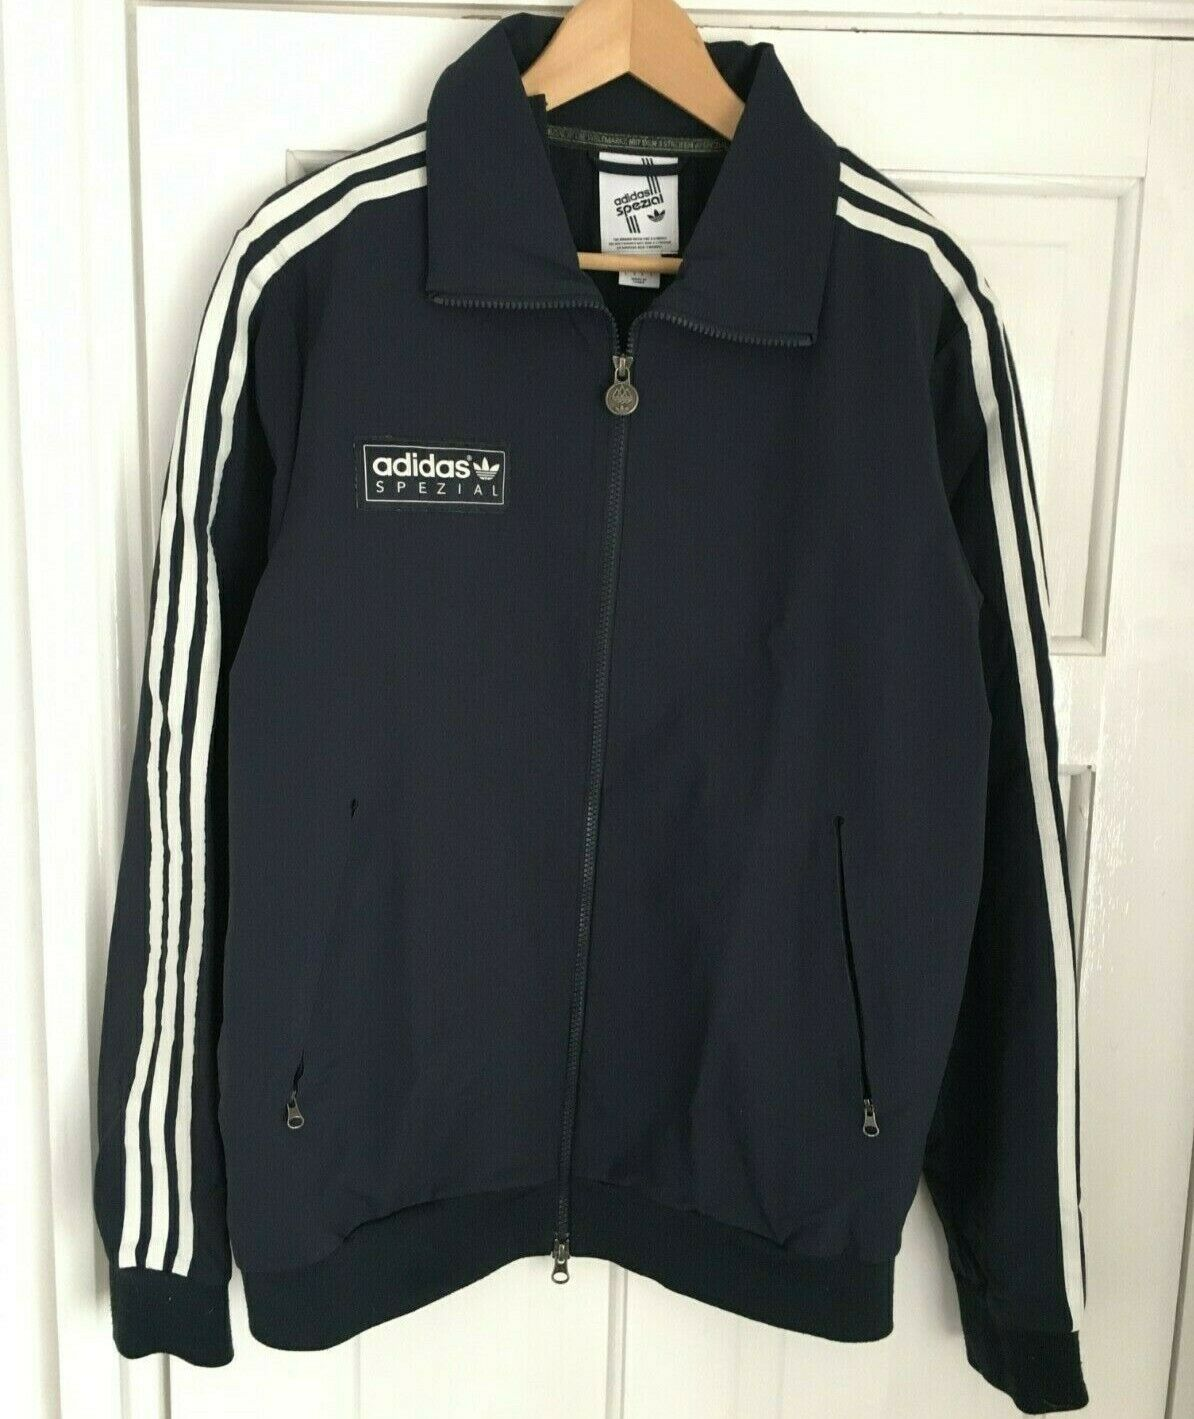 Adidas Spezial Forest Gate Track Jacket Tracktop Navy Bq2552 Mens Sz 2xl Xxl For Sale Ebay